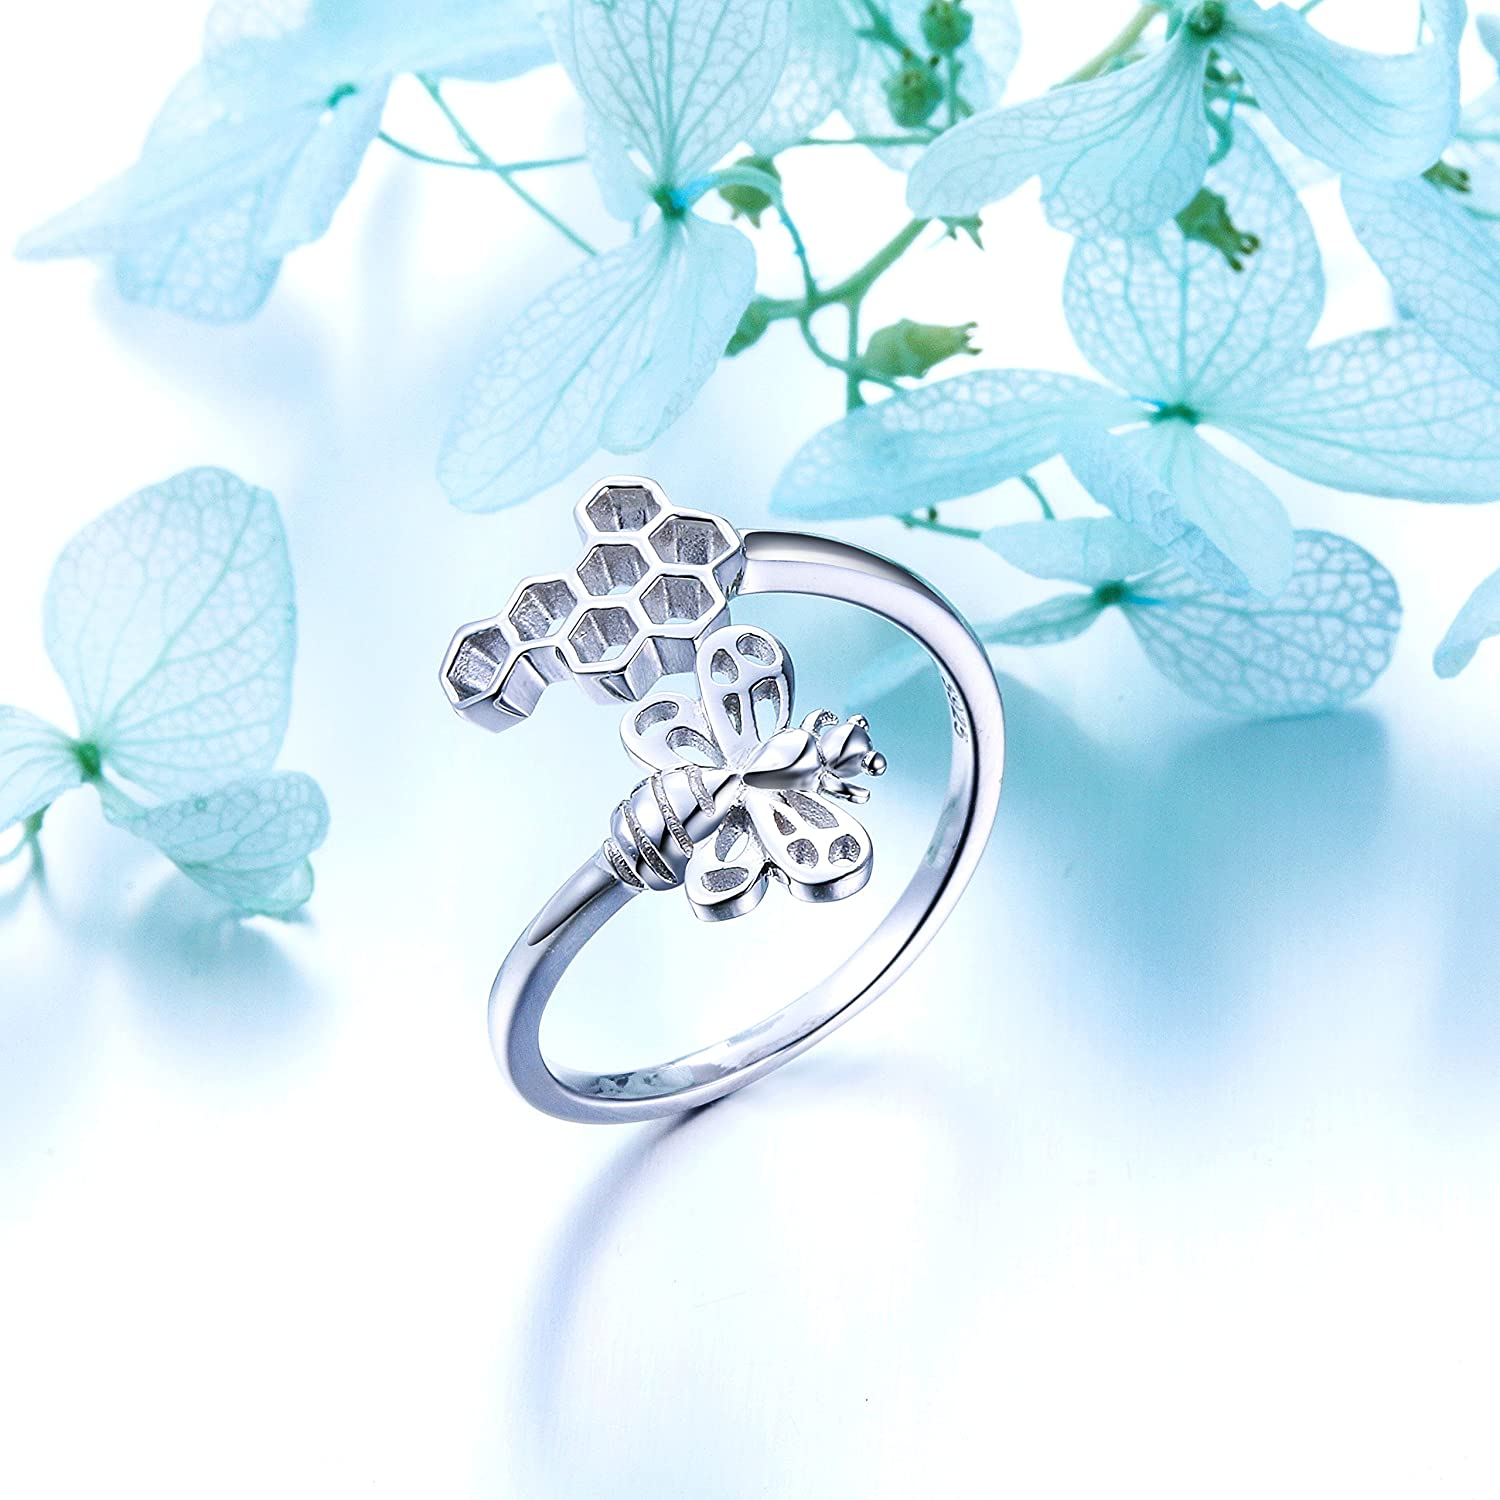 SILVER MOUNTAIN 925 Sterling Silver Open Animal Rings for Women Resizable Ring